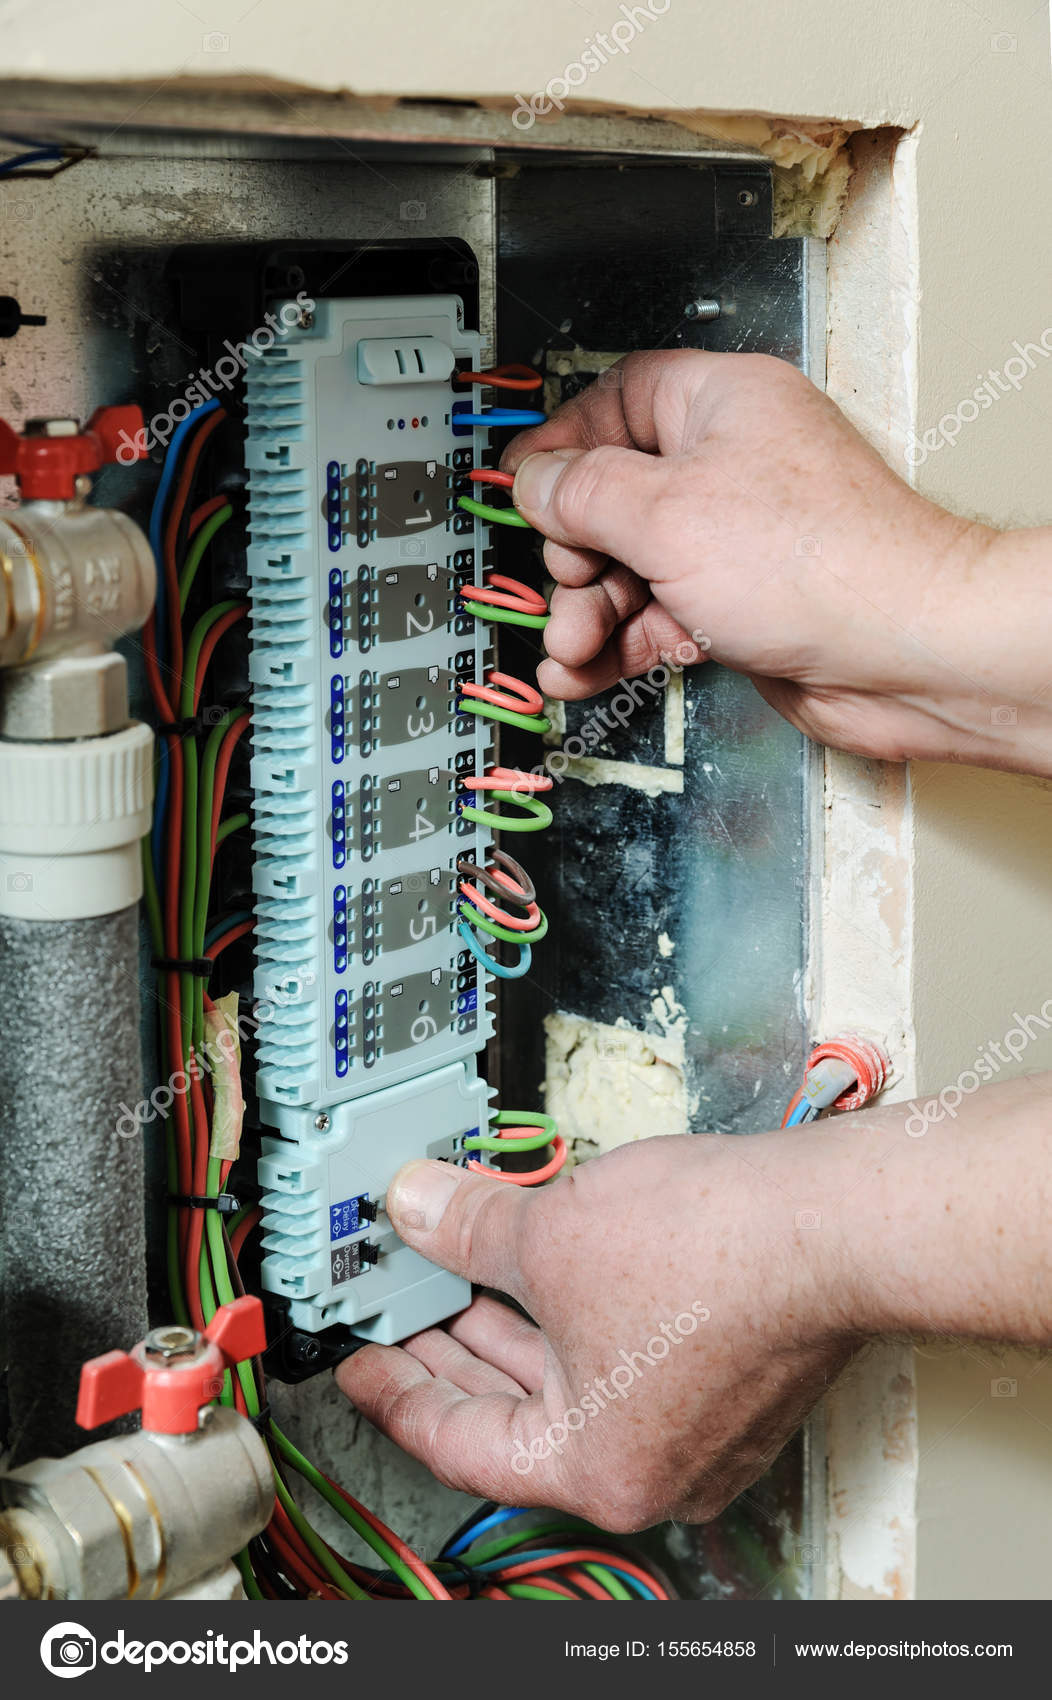 hight resolution of switching signal wires in the home s heating system control stock photo